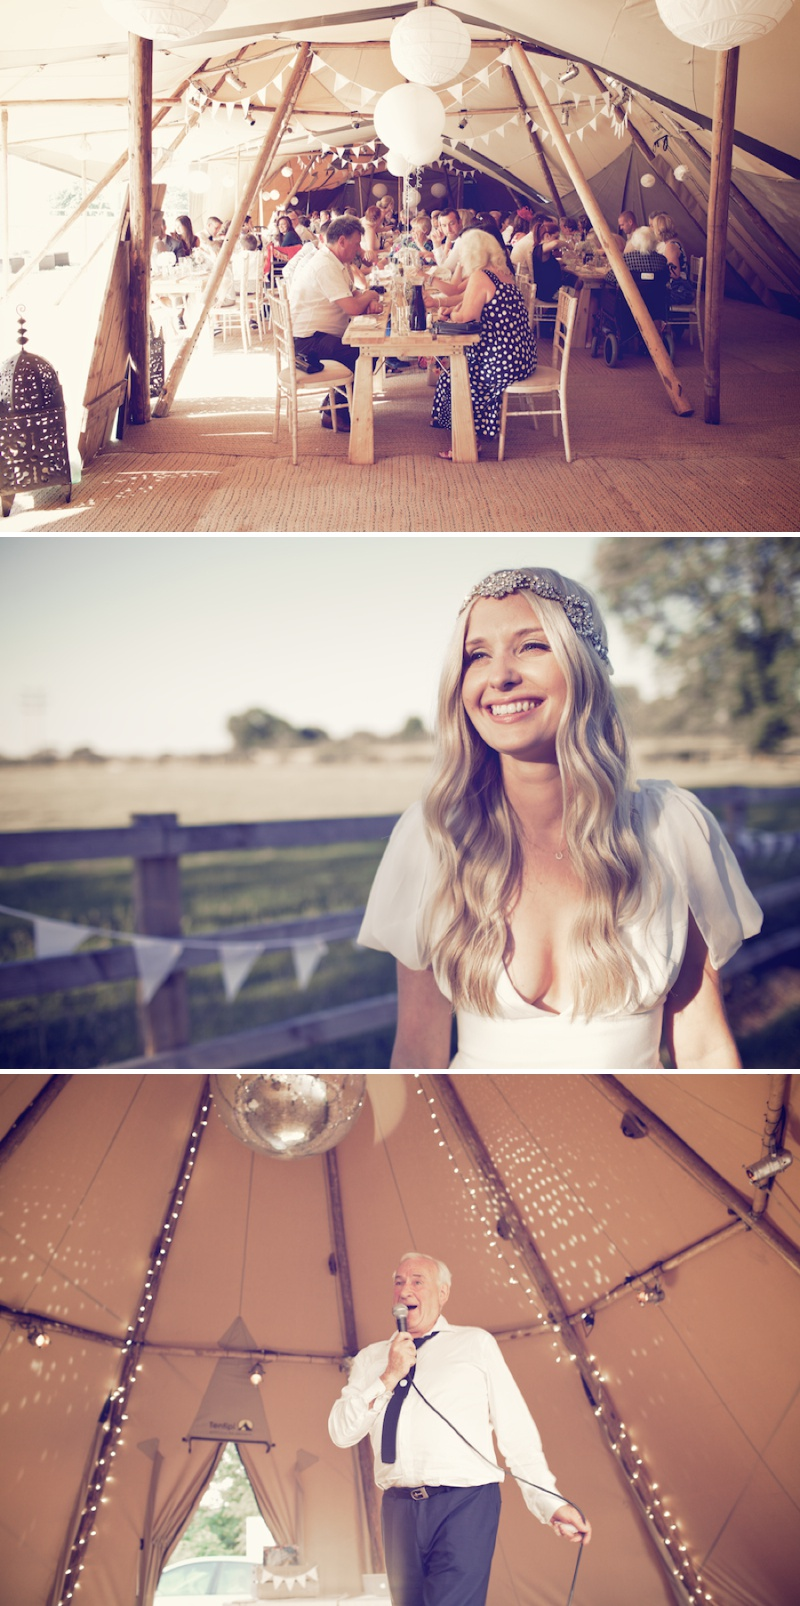 An Ethereal Bohemian Inspired Wedding At Standlow Farm With Tipis From Papakata, A David Fielden Dress And Juliet Cap Veil With A Sweet Avalanche Rose Bouquet 12